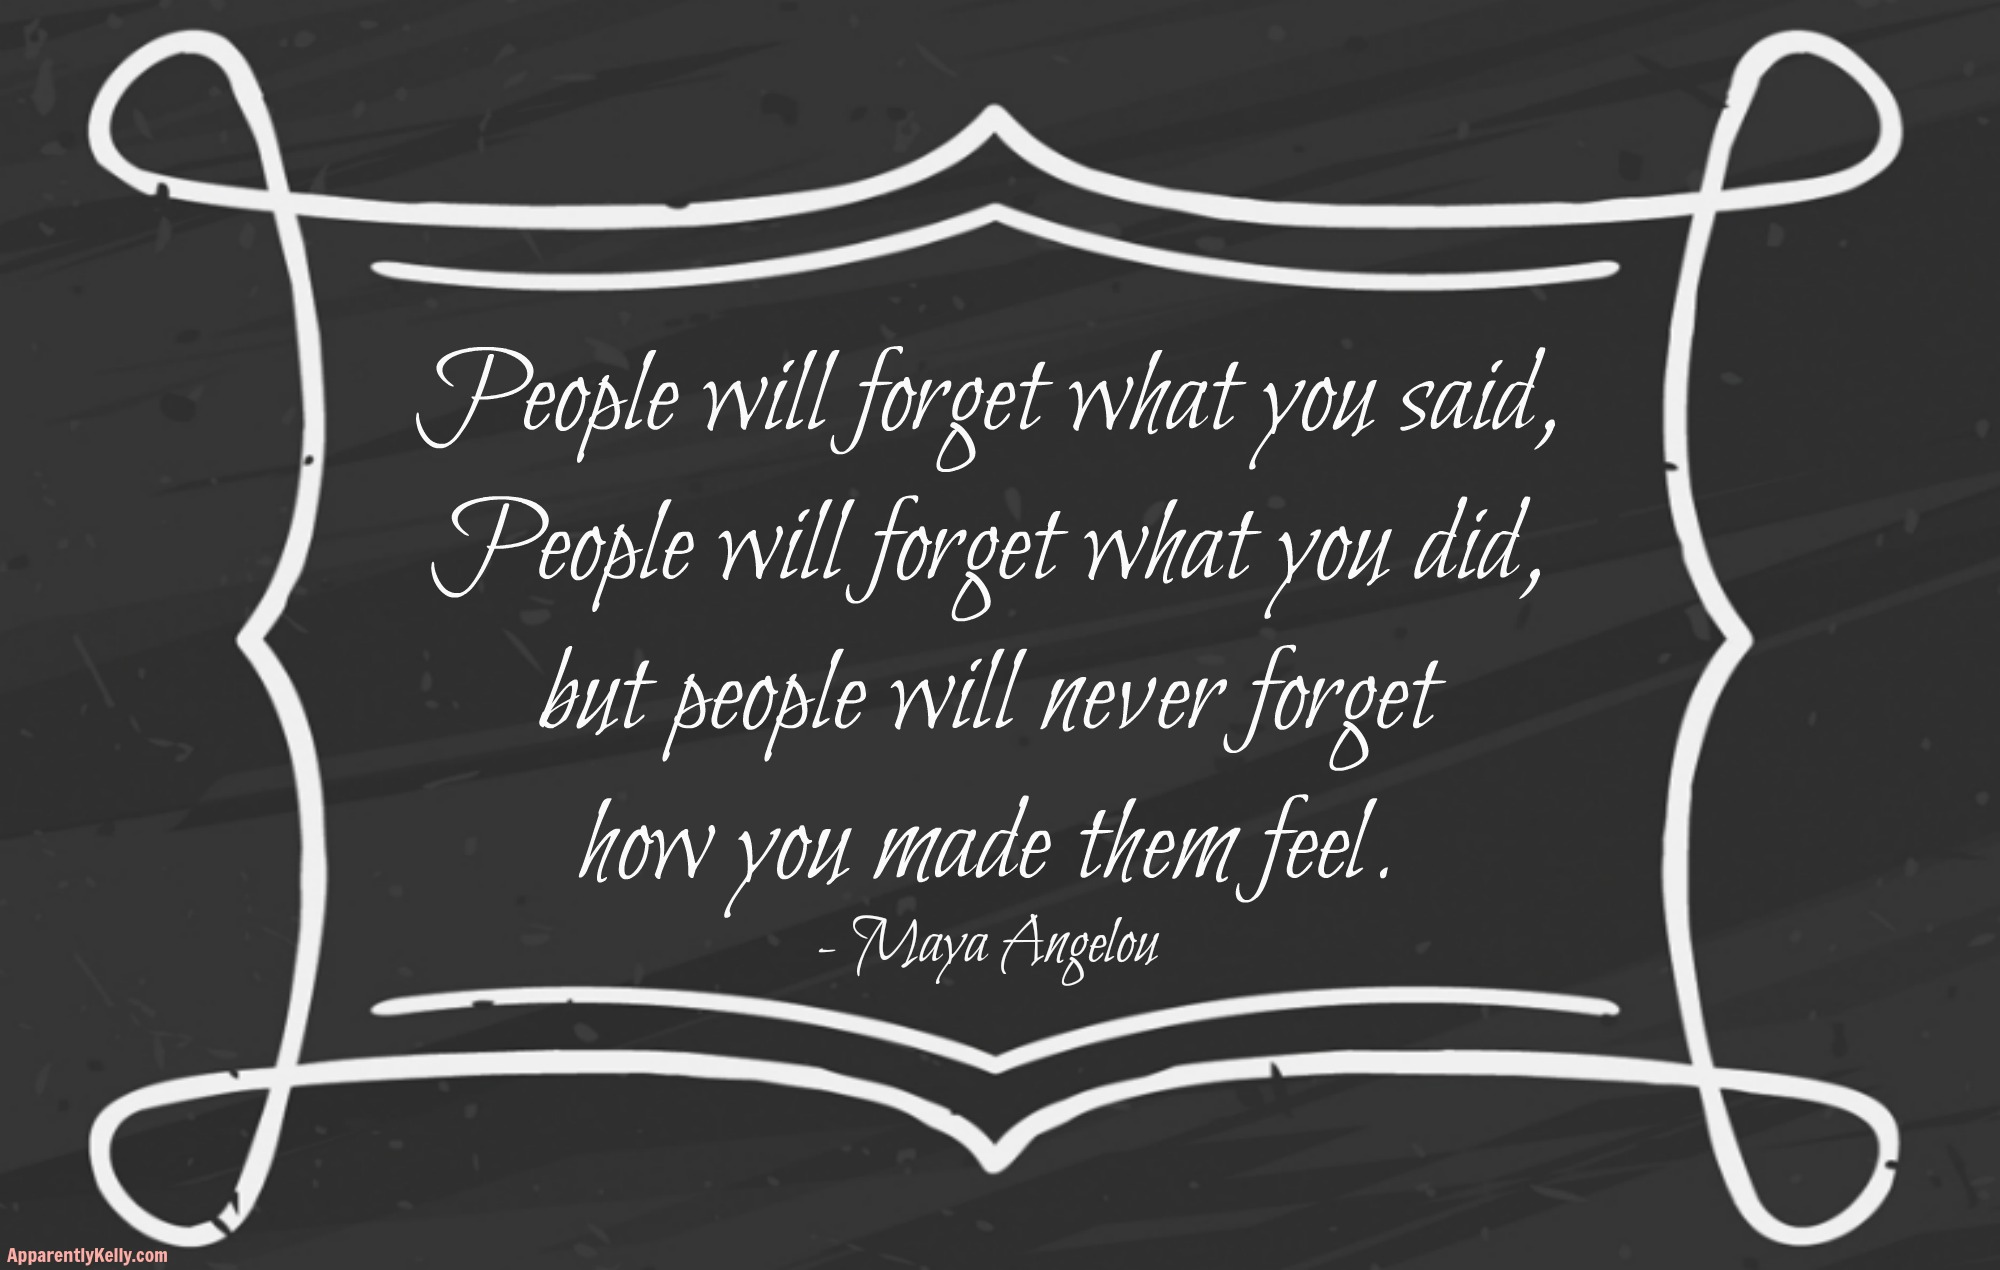 """People will forget what you said, people will forget what you did, but people will never forget how you made them feel""  Maya Angelou"